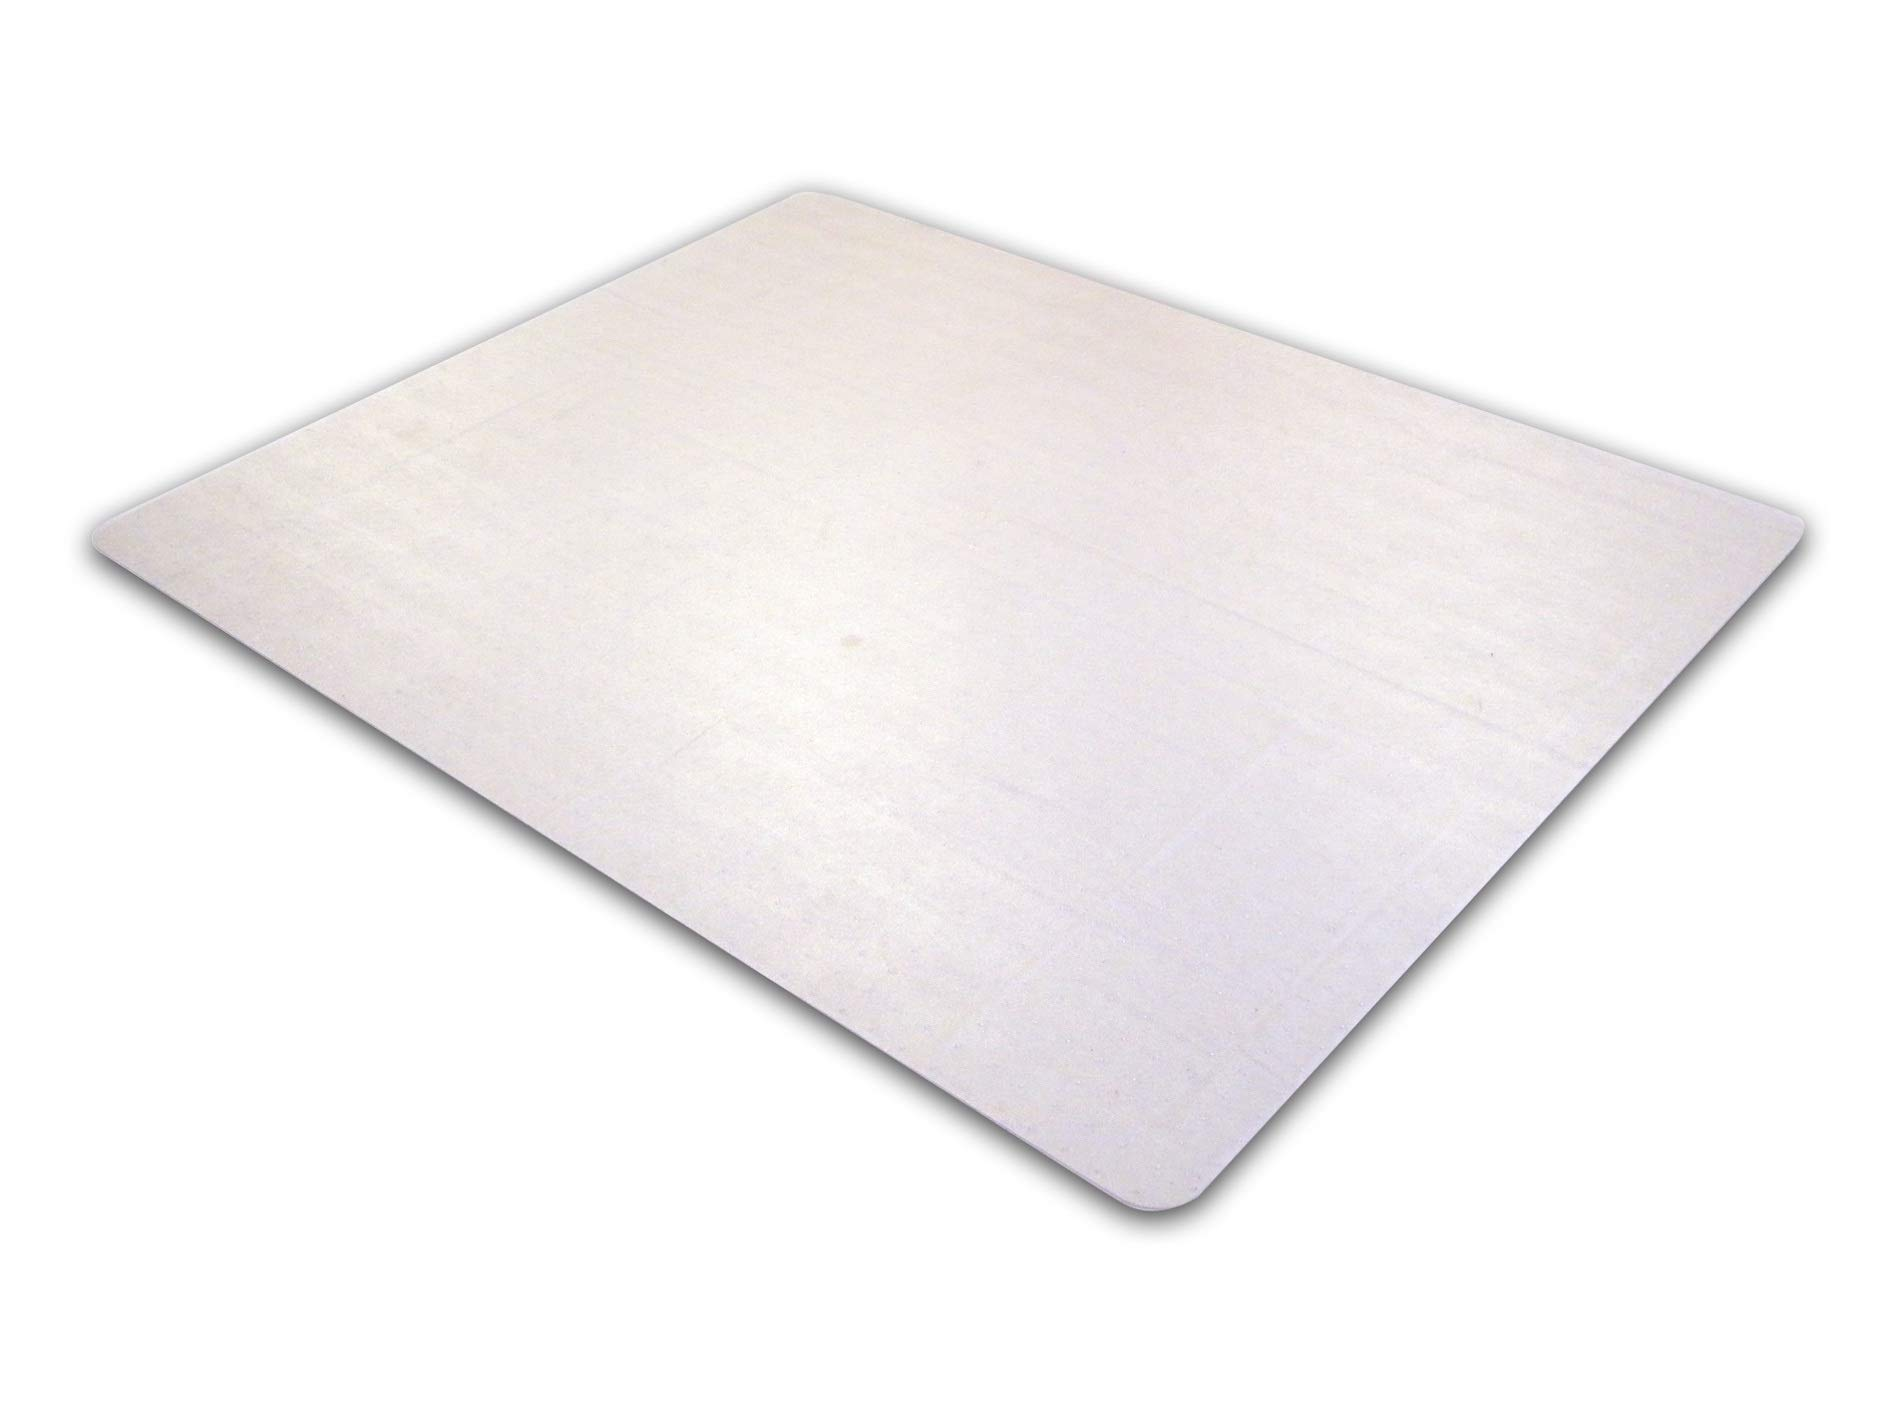 Cleartex Ultimat Chair Mat, Polycarbonate, for Low/Medium Pile Carpets up to 1/2'', Rectangular, 48'' x 79'' (FR1120023ER)